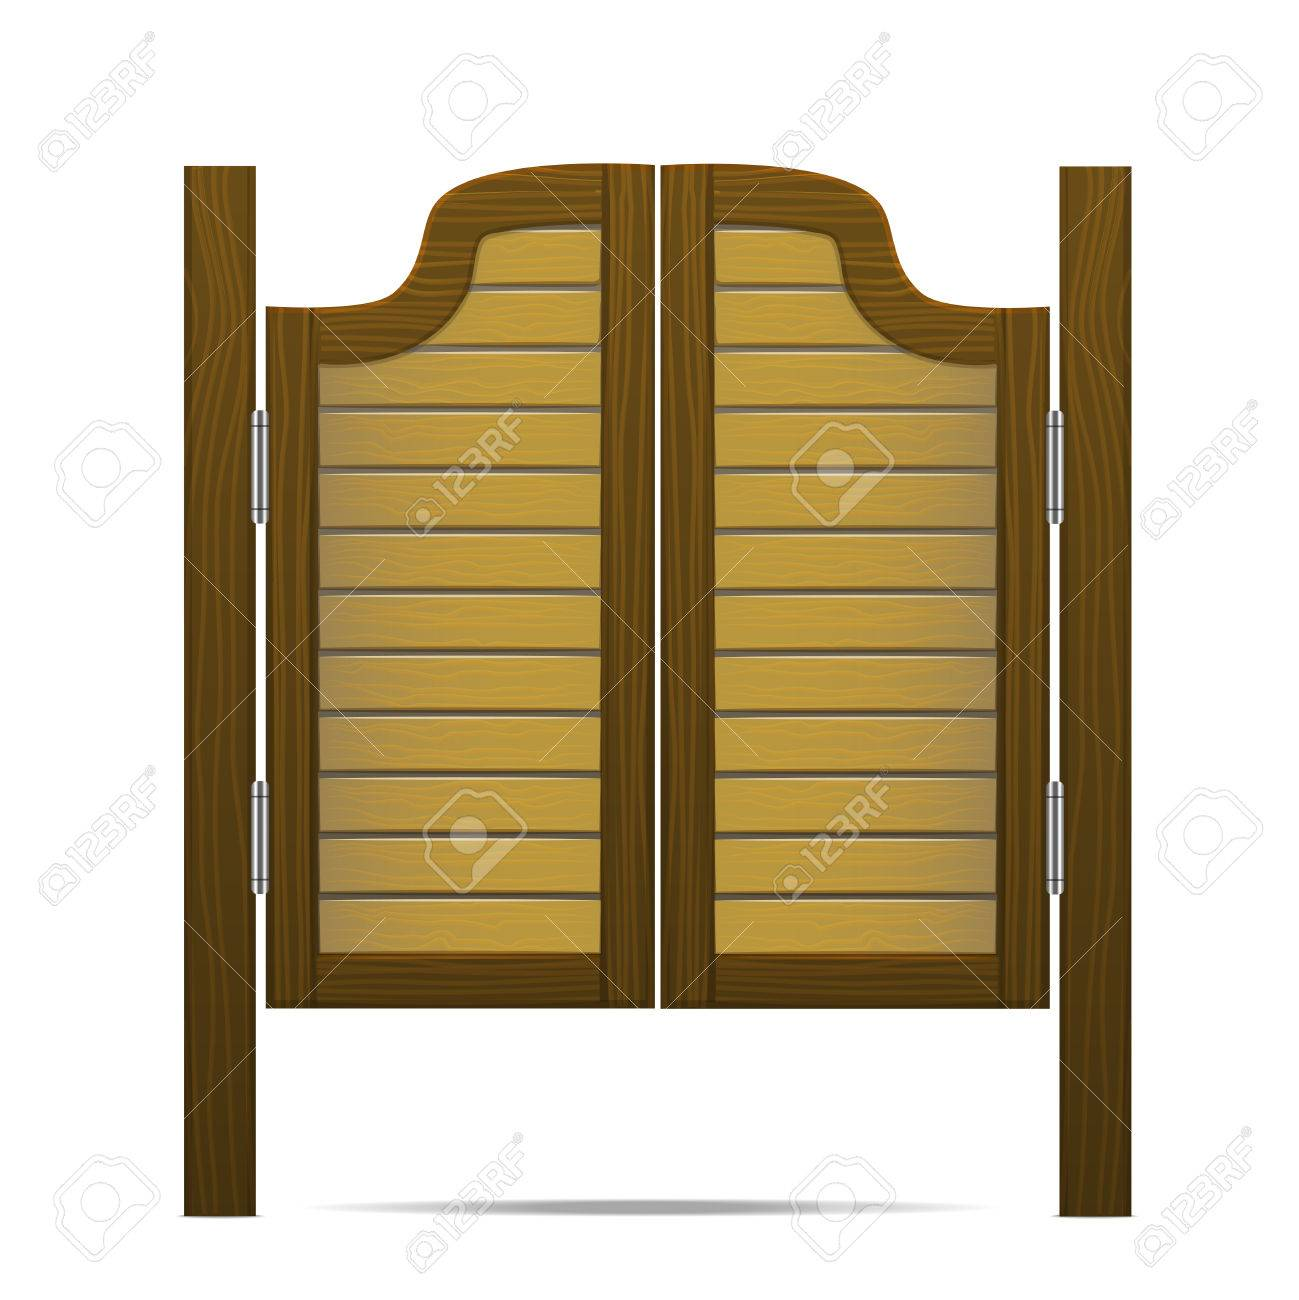 Wooden Brown Gate or Door in Salon Bar or Pub. Vector Stock Vector -  sc 1 st  123RF.com & Wooden Brown Gate Or Door In Salon Bar Or Pub. Vector Royalty ...